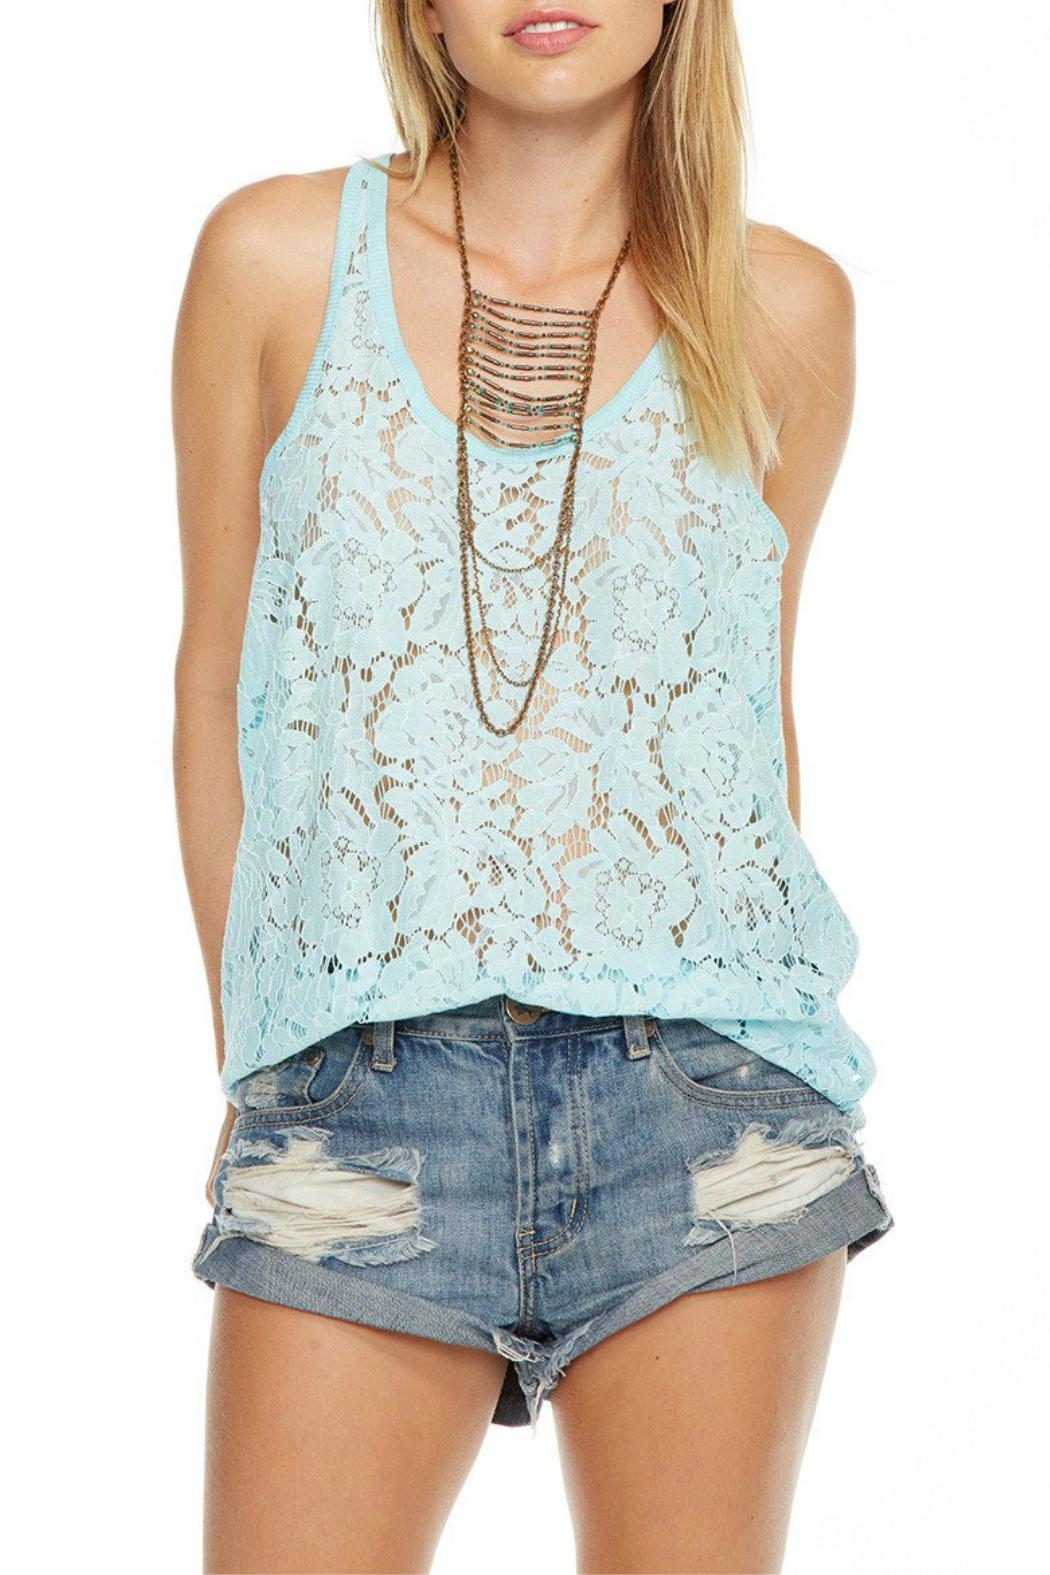 Chaser Aqua Lace Tank Top - Front Cropped Image